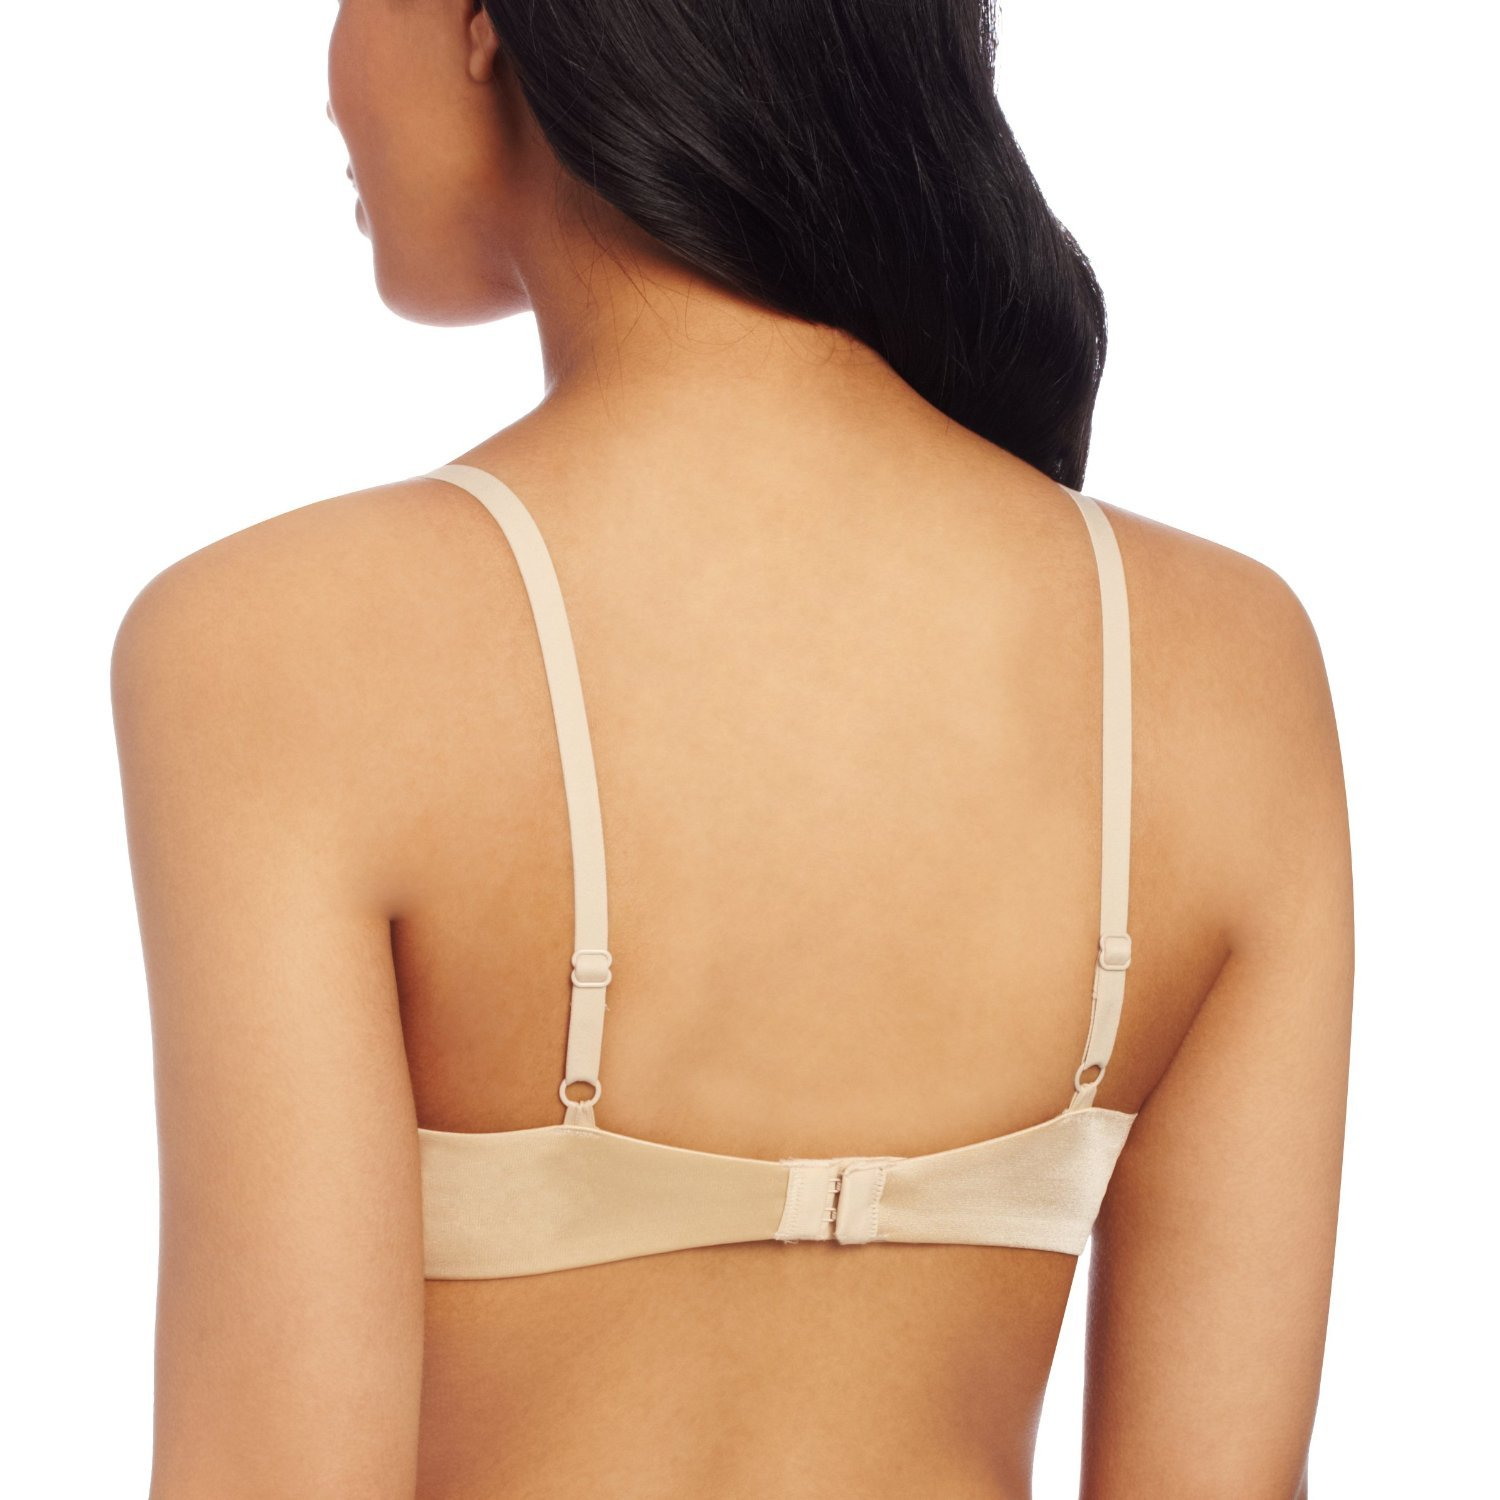 Maidenform Love The Lift Natural Boost Demi T-Shirt Bra Latte Lift 32C by Maidenform (Image #3)